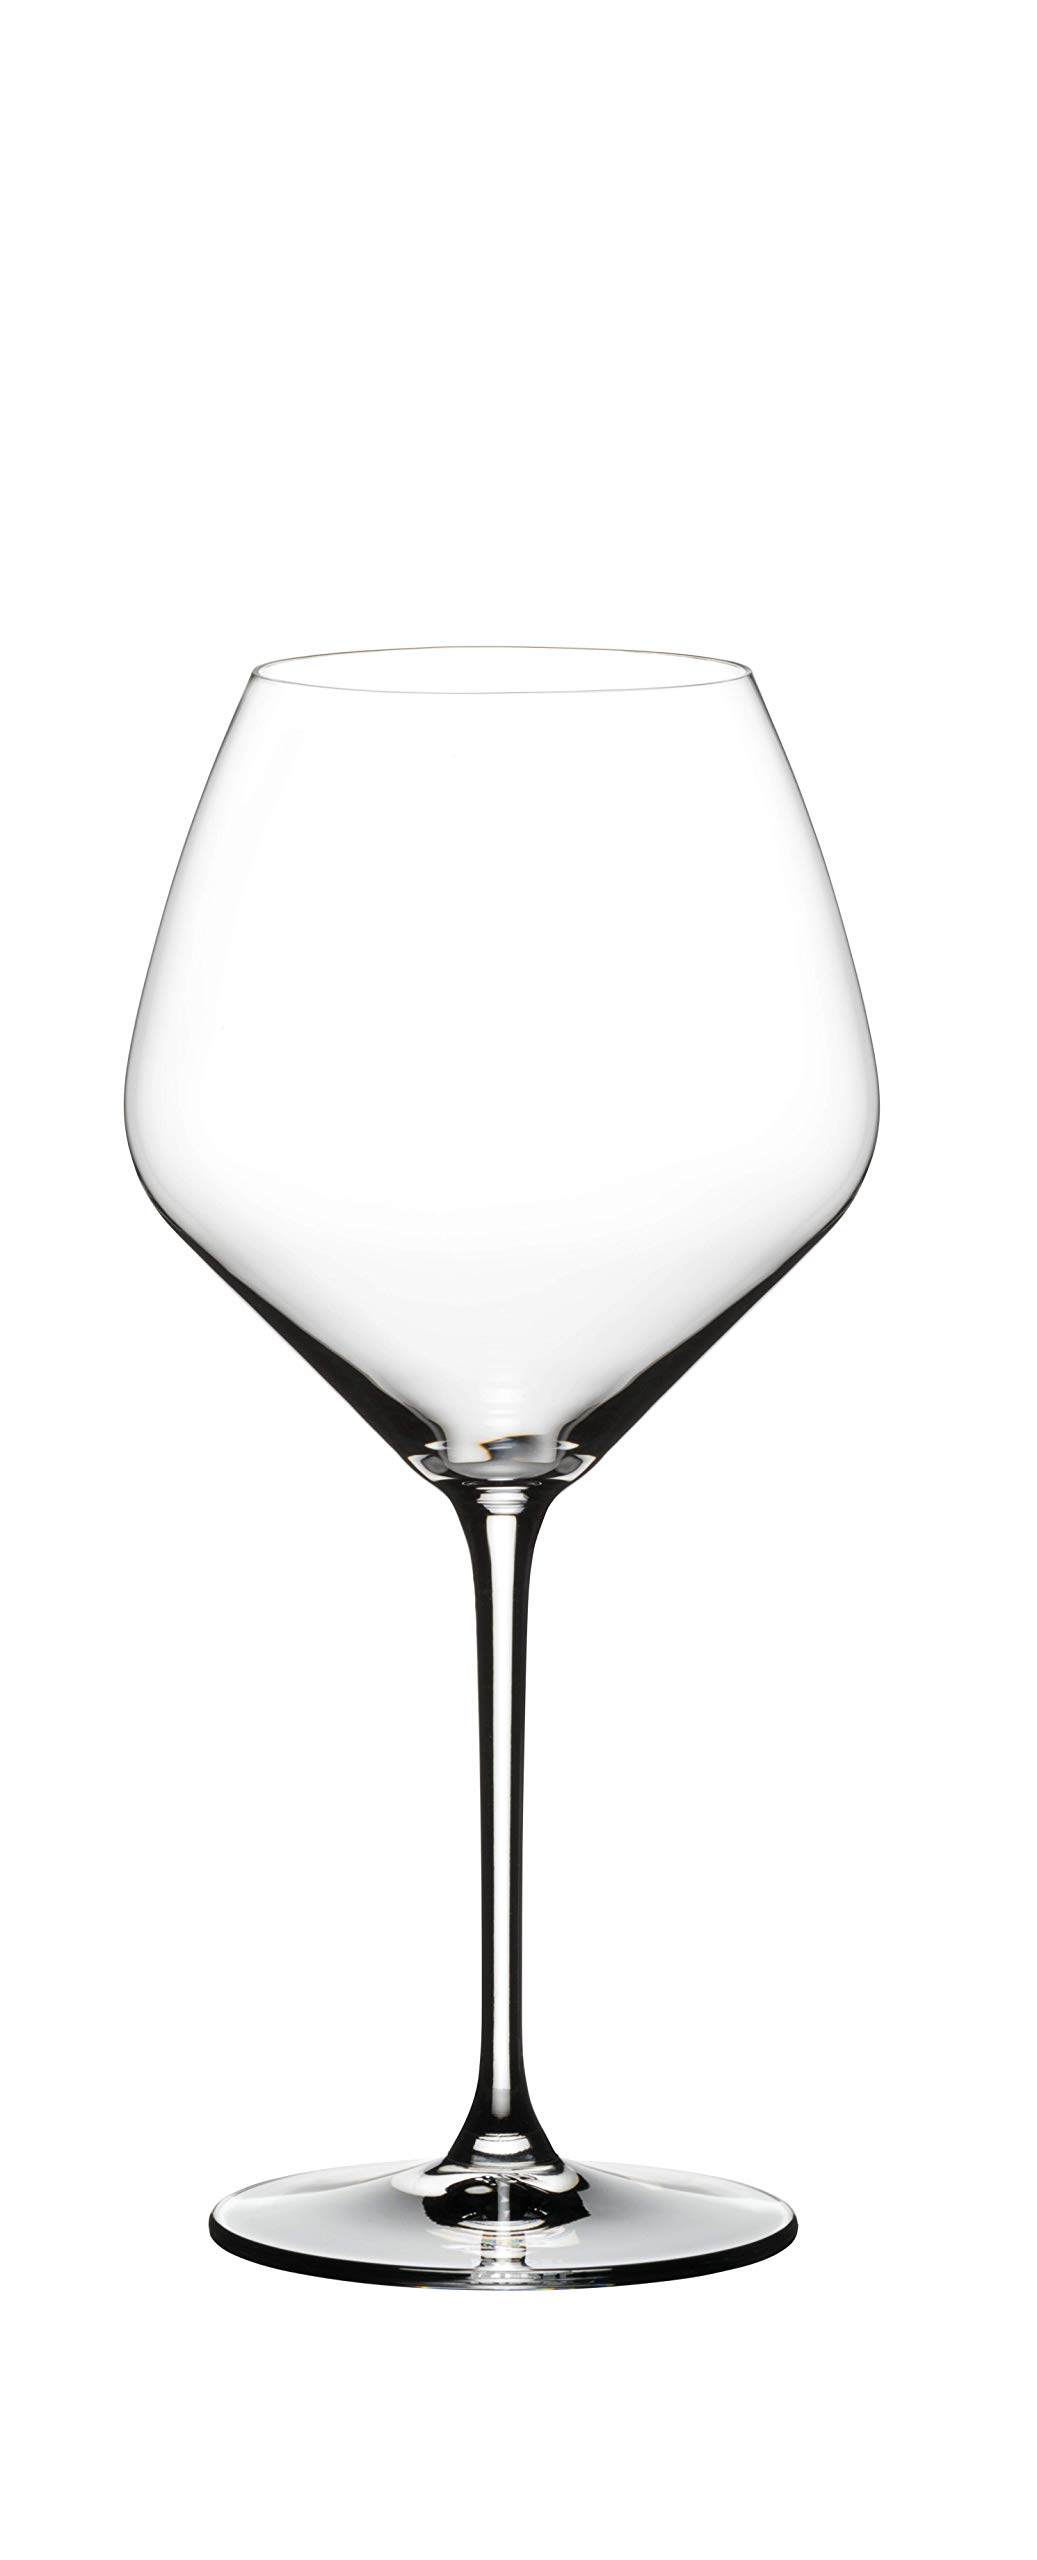 Riedel 4441/07 Extreme Pinot Noir Glass Set of 2 Clear